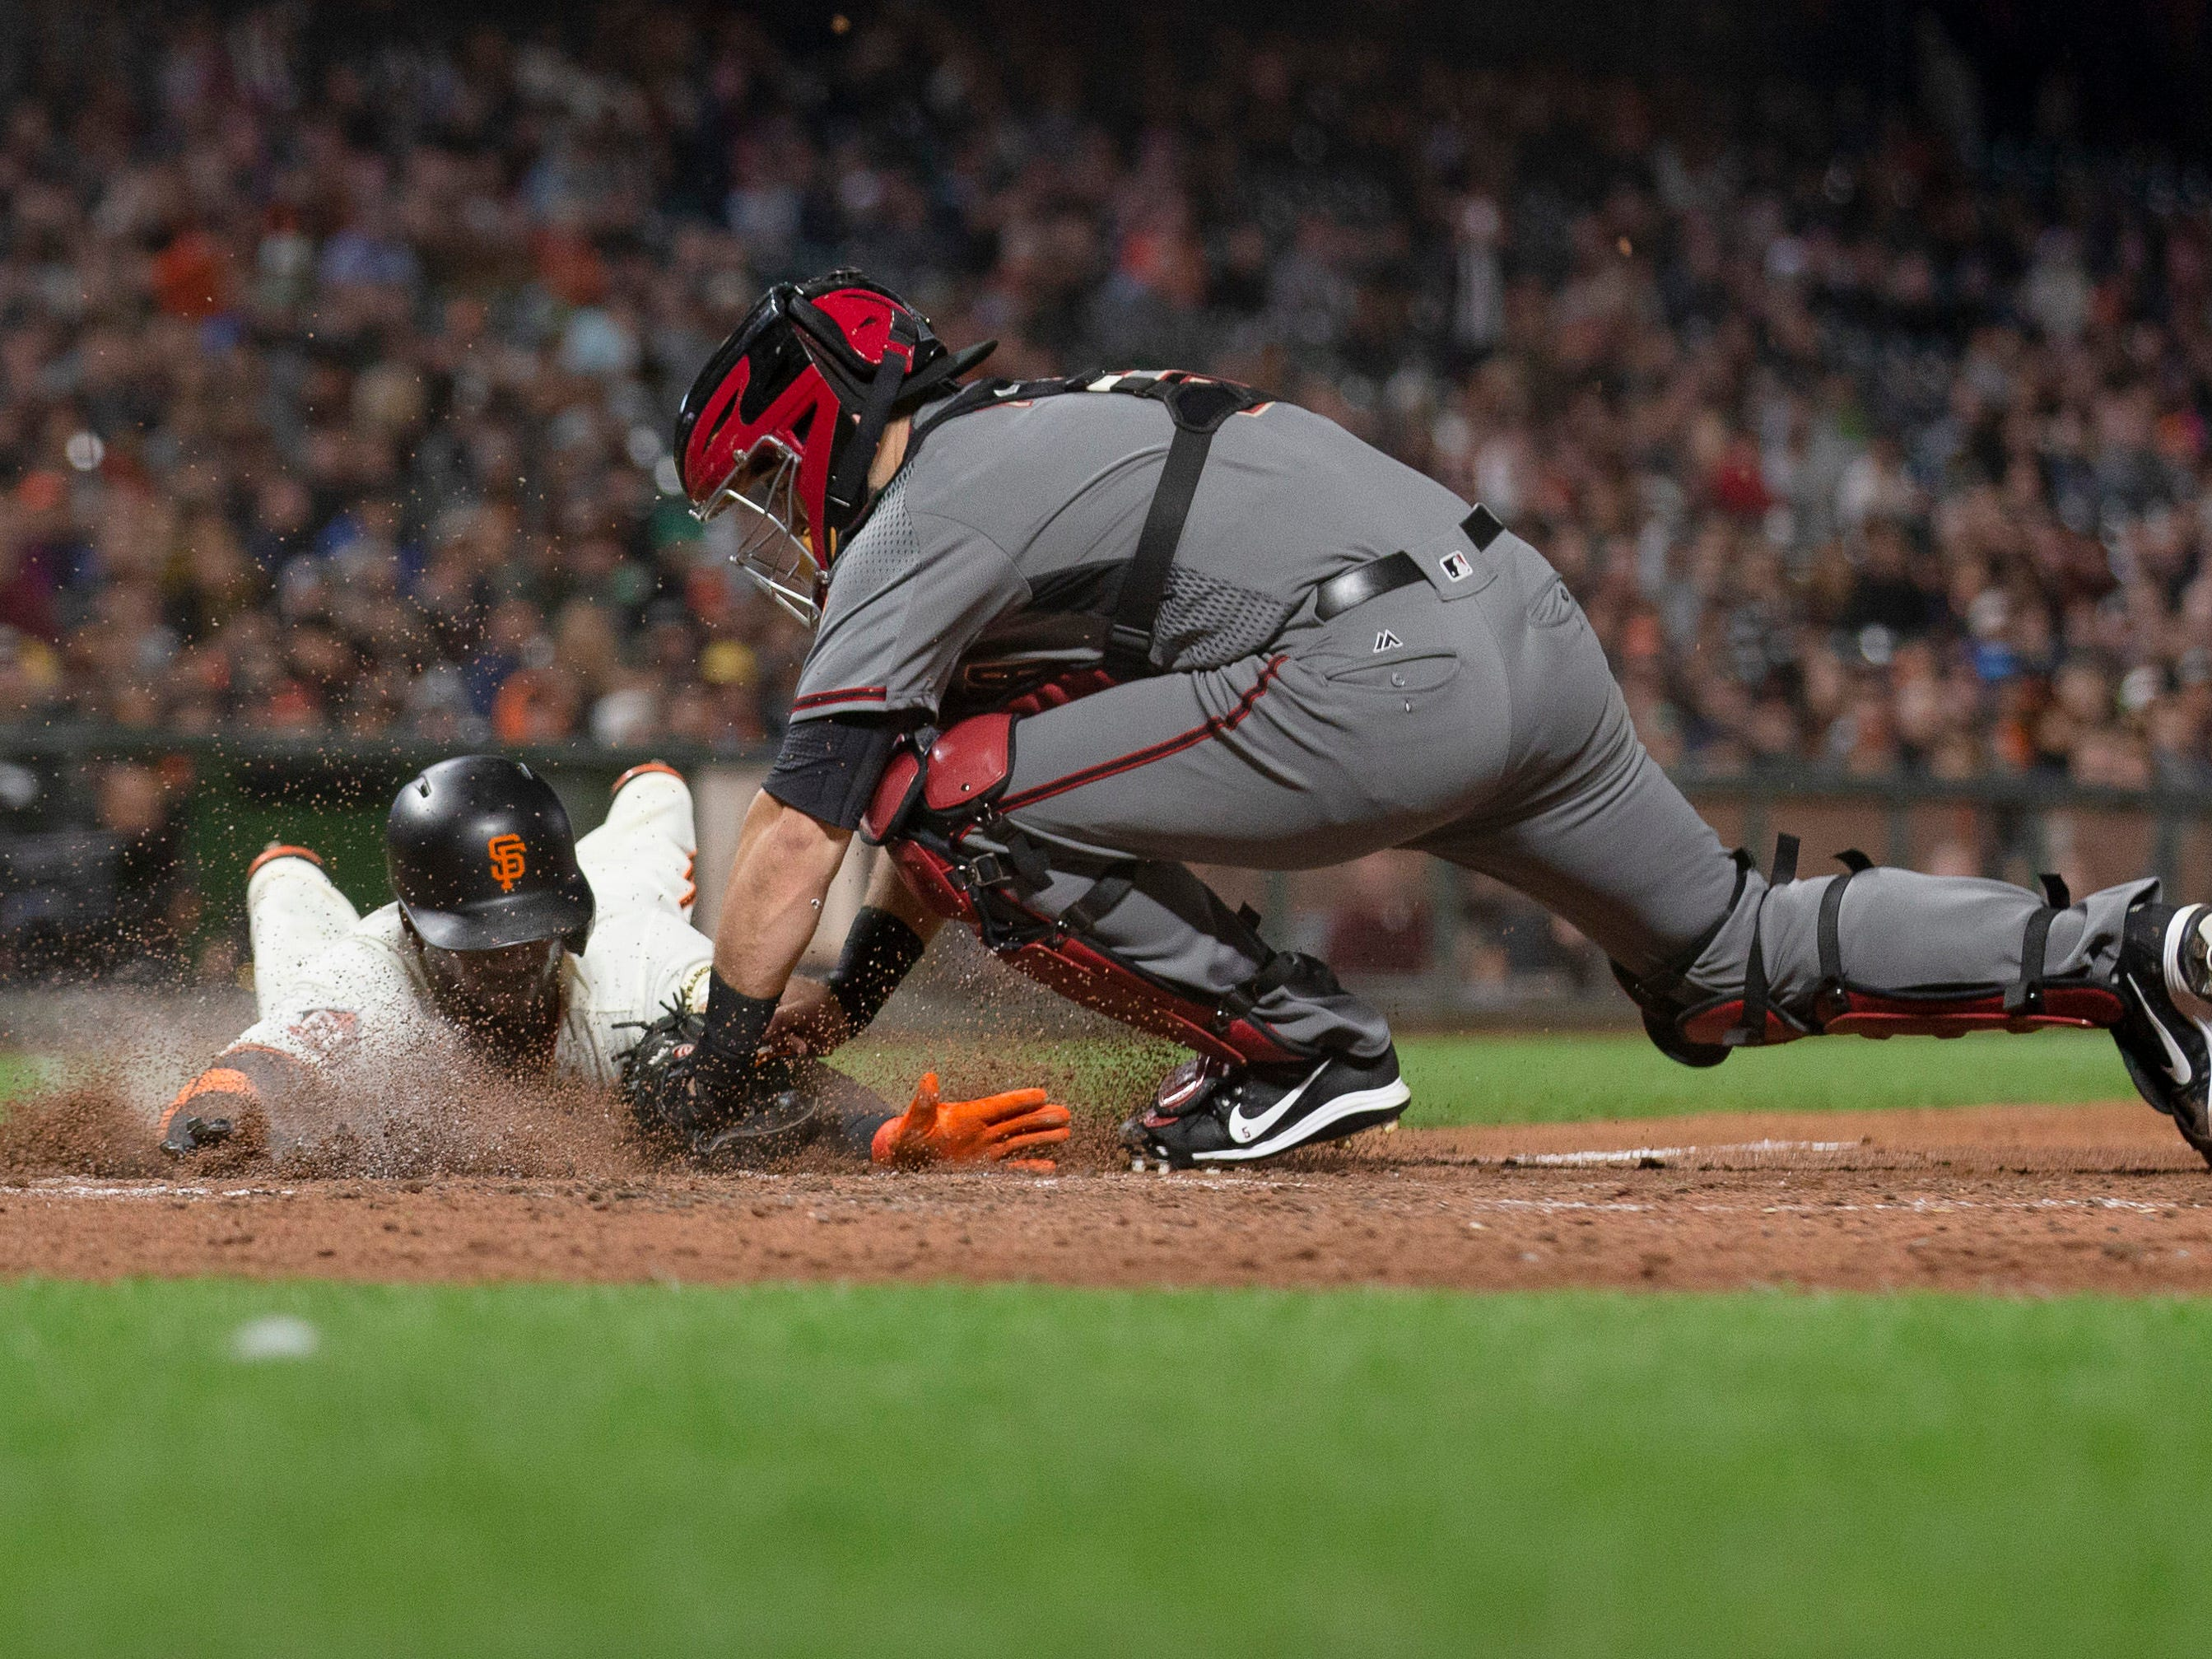 Aug 27, 2018; San Francisco, CA, USA; San Francisco Giants right fielder Andrew McCutchen (22) is tagged out at home plate by Arizona Diamondbacks catcher Alex Avila (5) during the sixth inning at AT&T Park. Mandatory Credit: Neville E. Guard-USA TODAY Sports